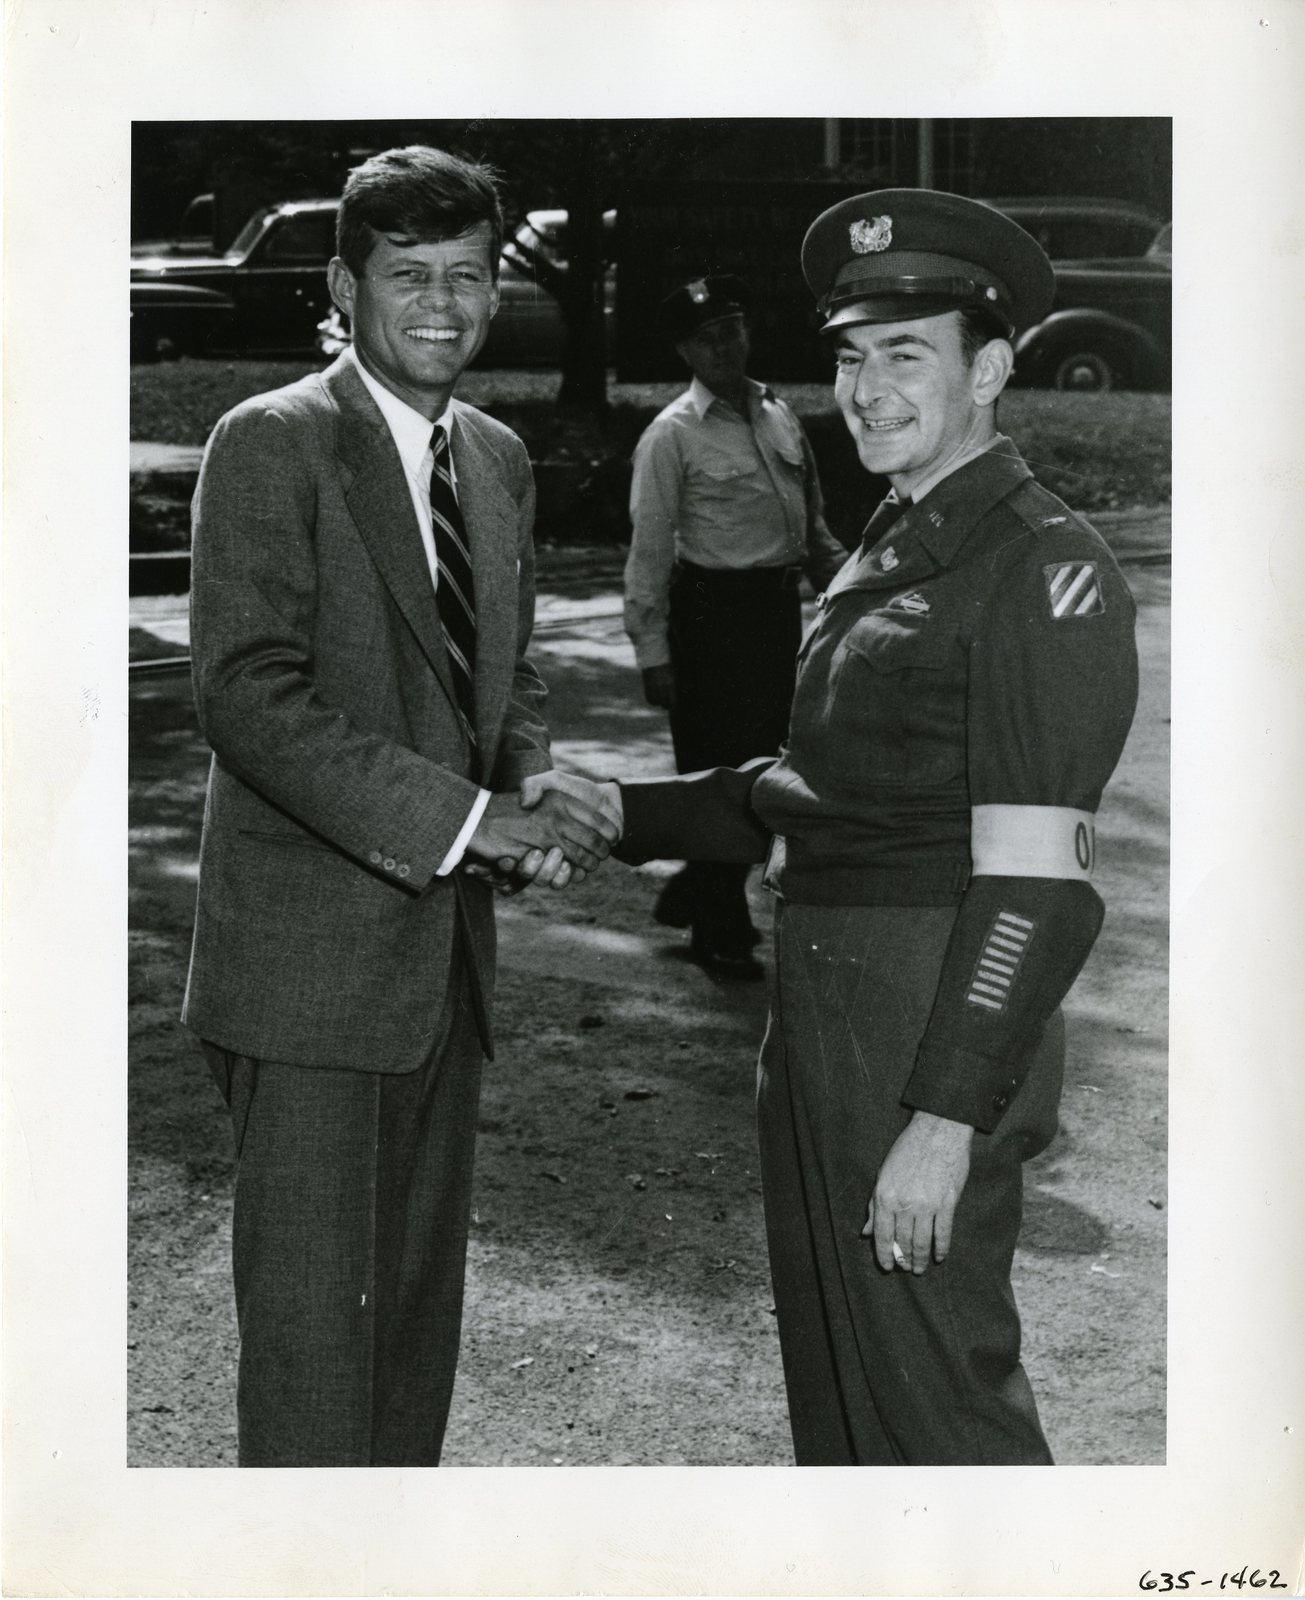 Senator John F. Kennedy Shakes Hands with an Officer at the Watertown Arsenal